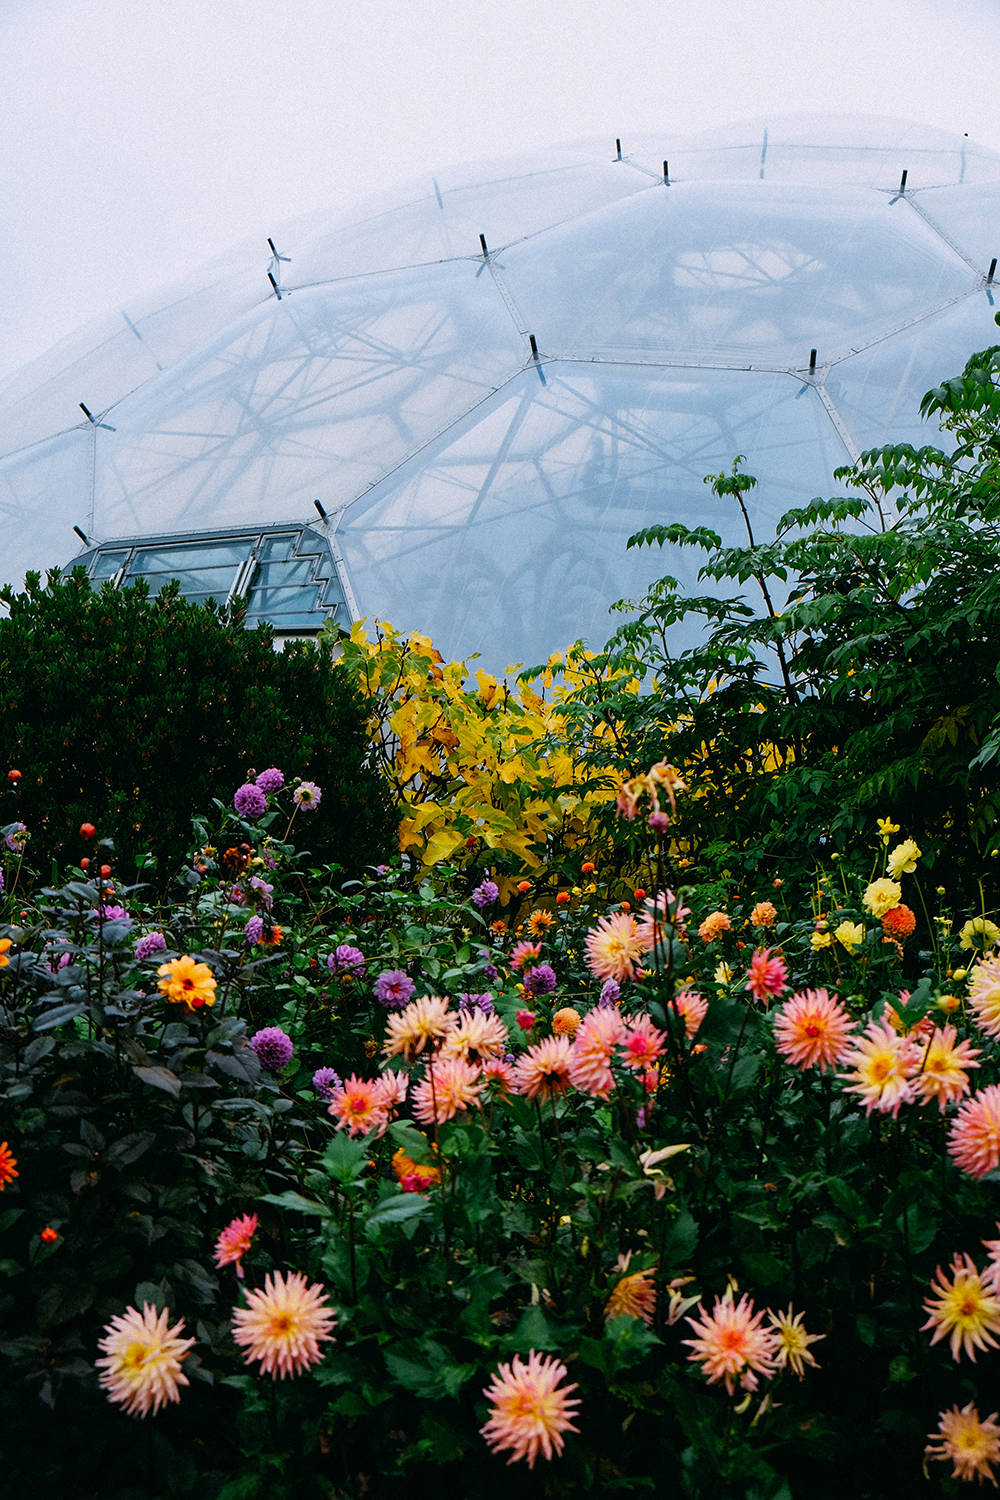 Photos of The Eden Project, Cornwall